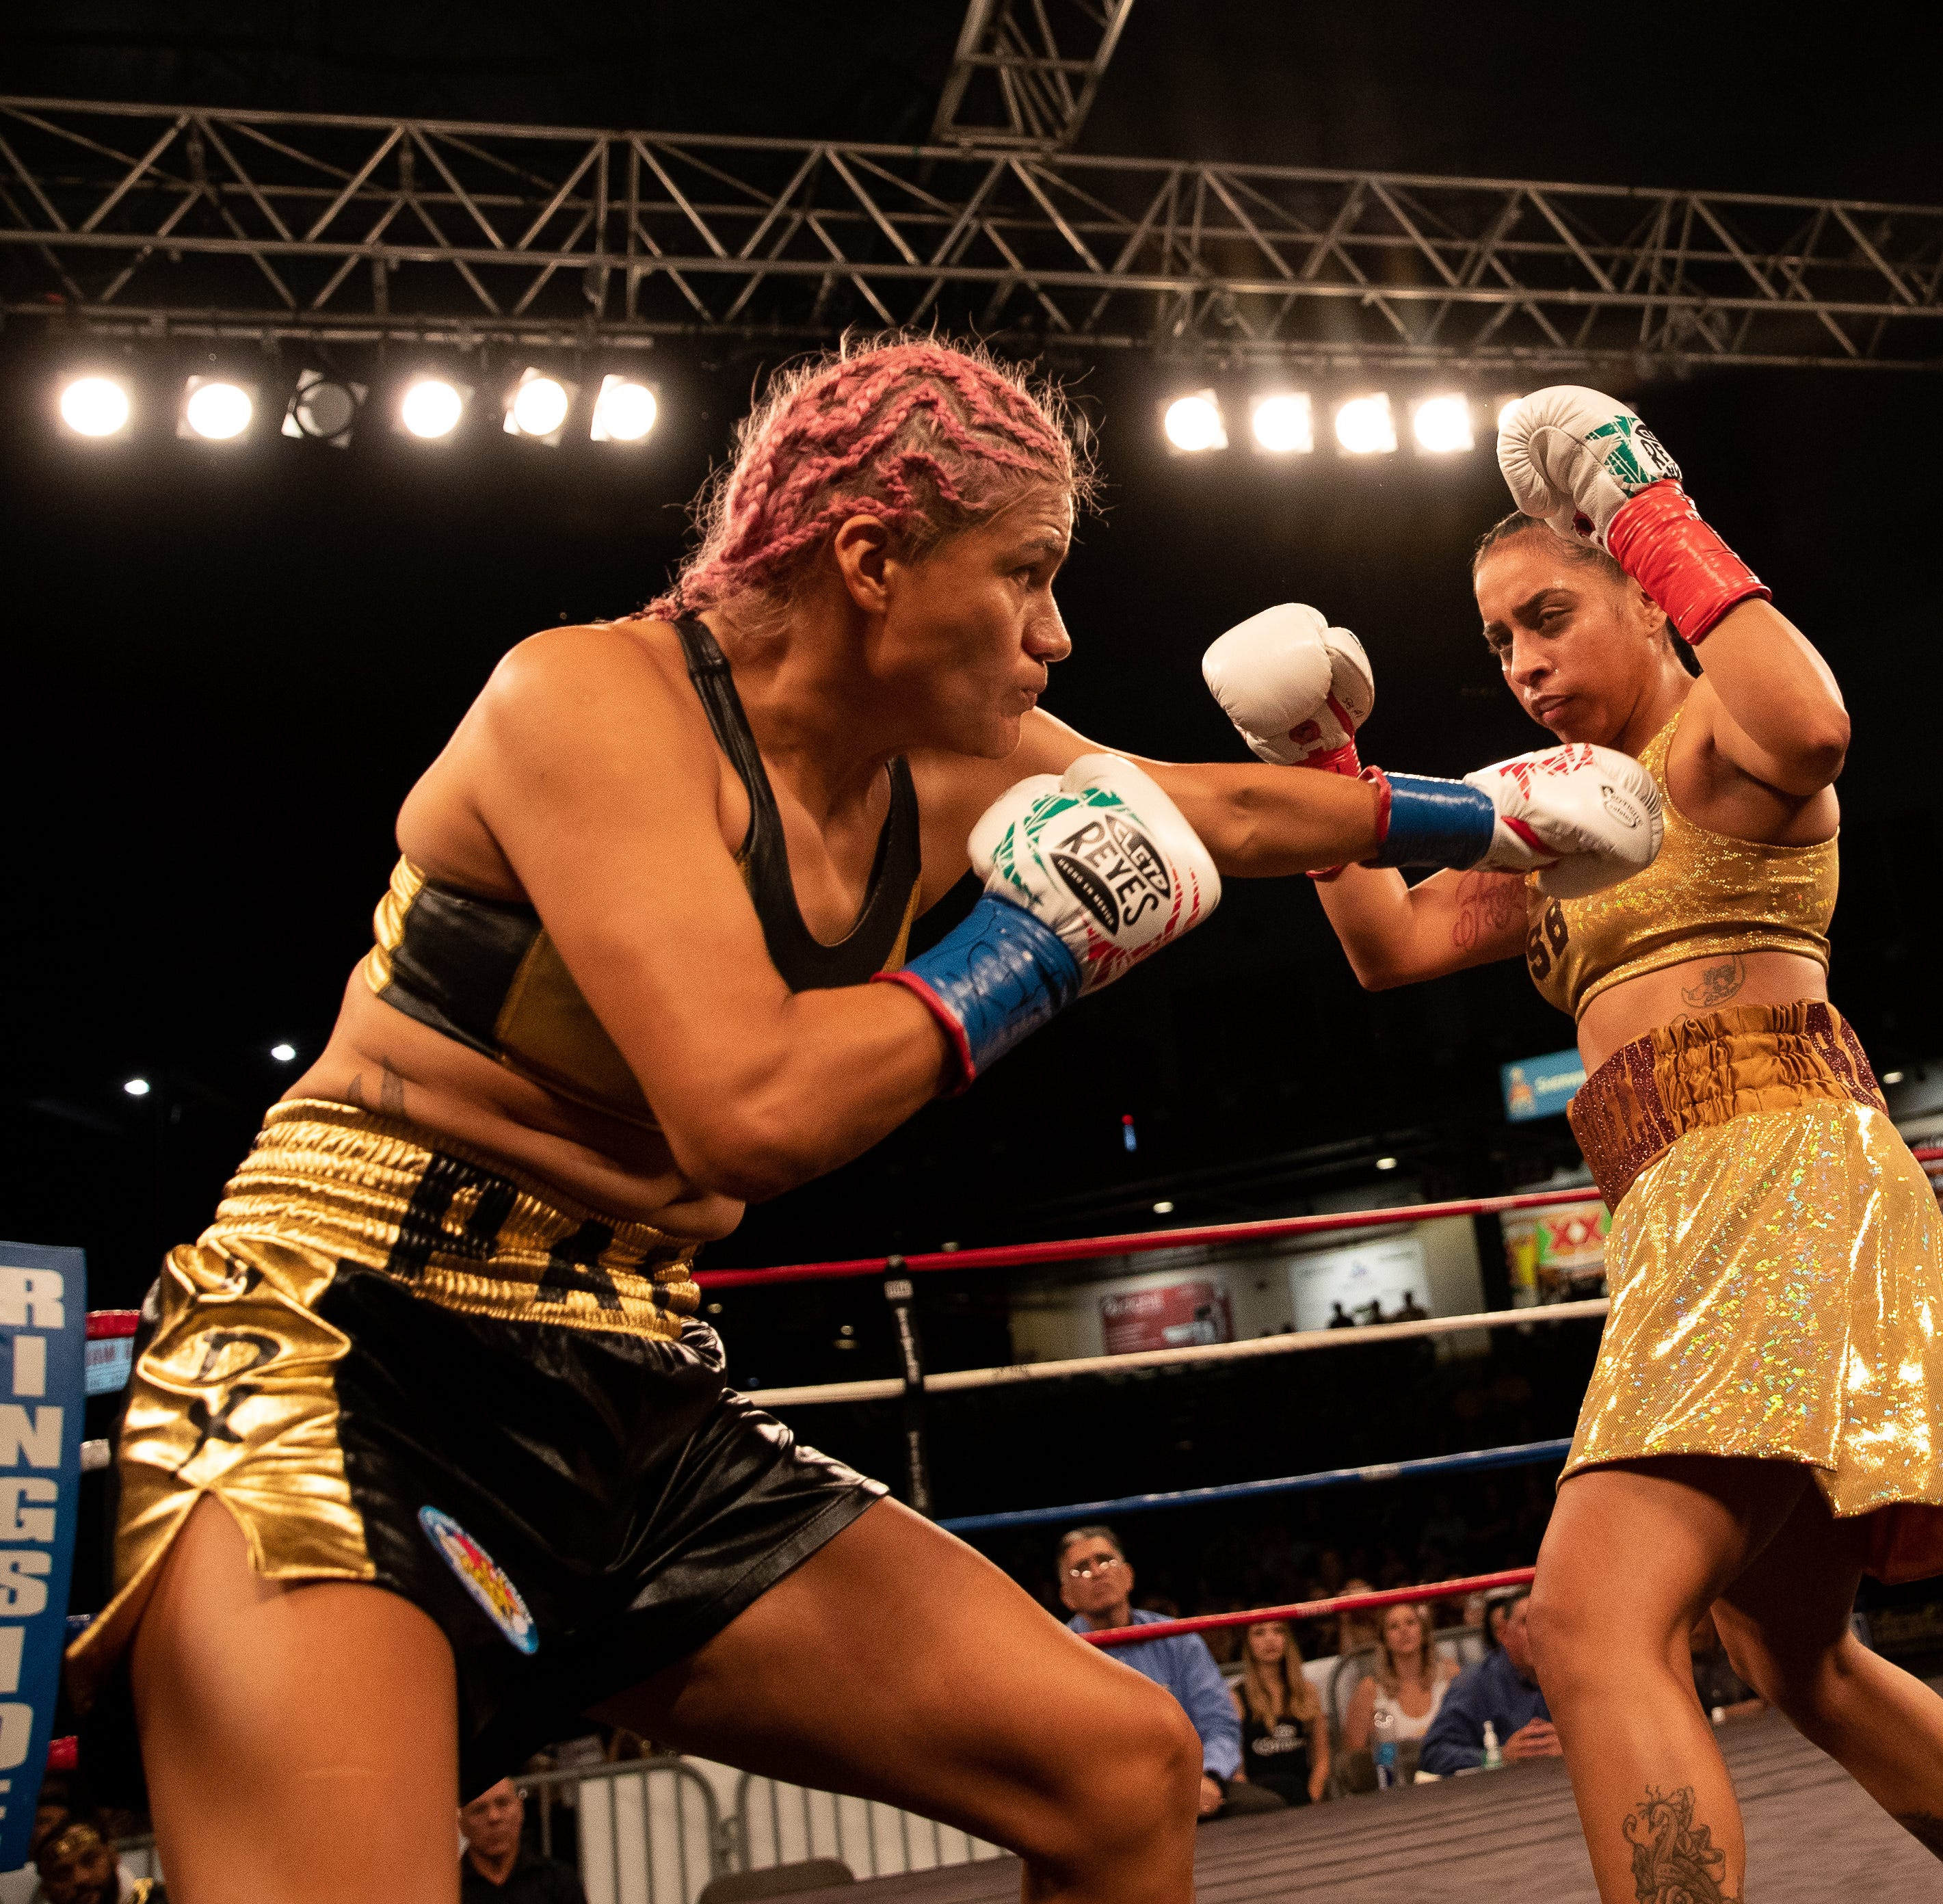 Knock it out of the park boxing event at Whataburger Field